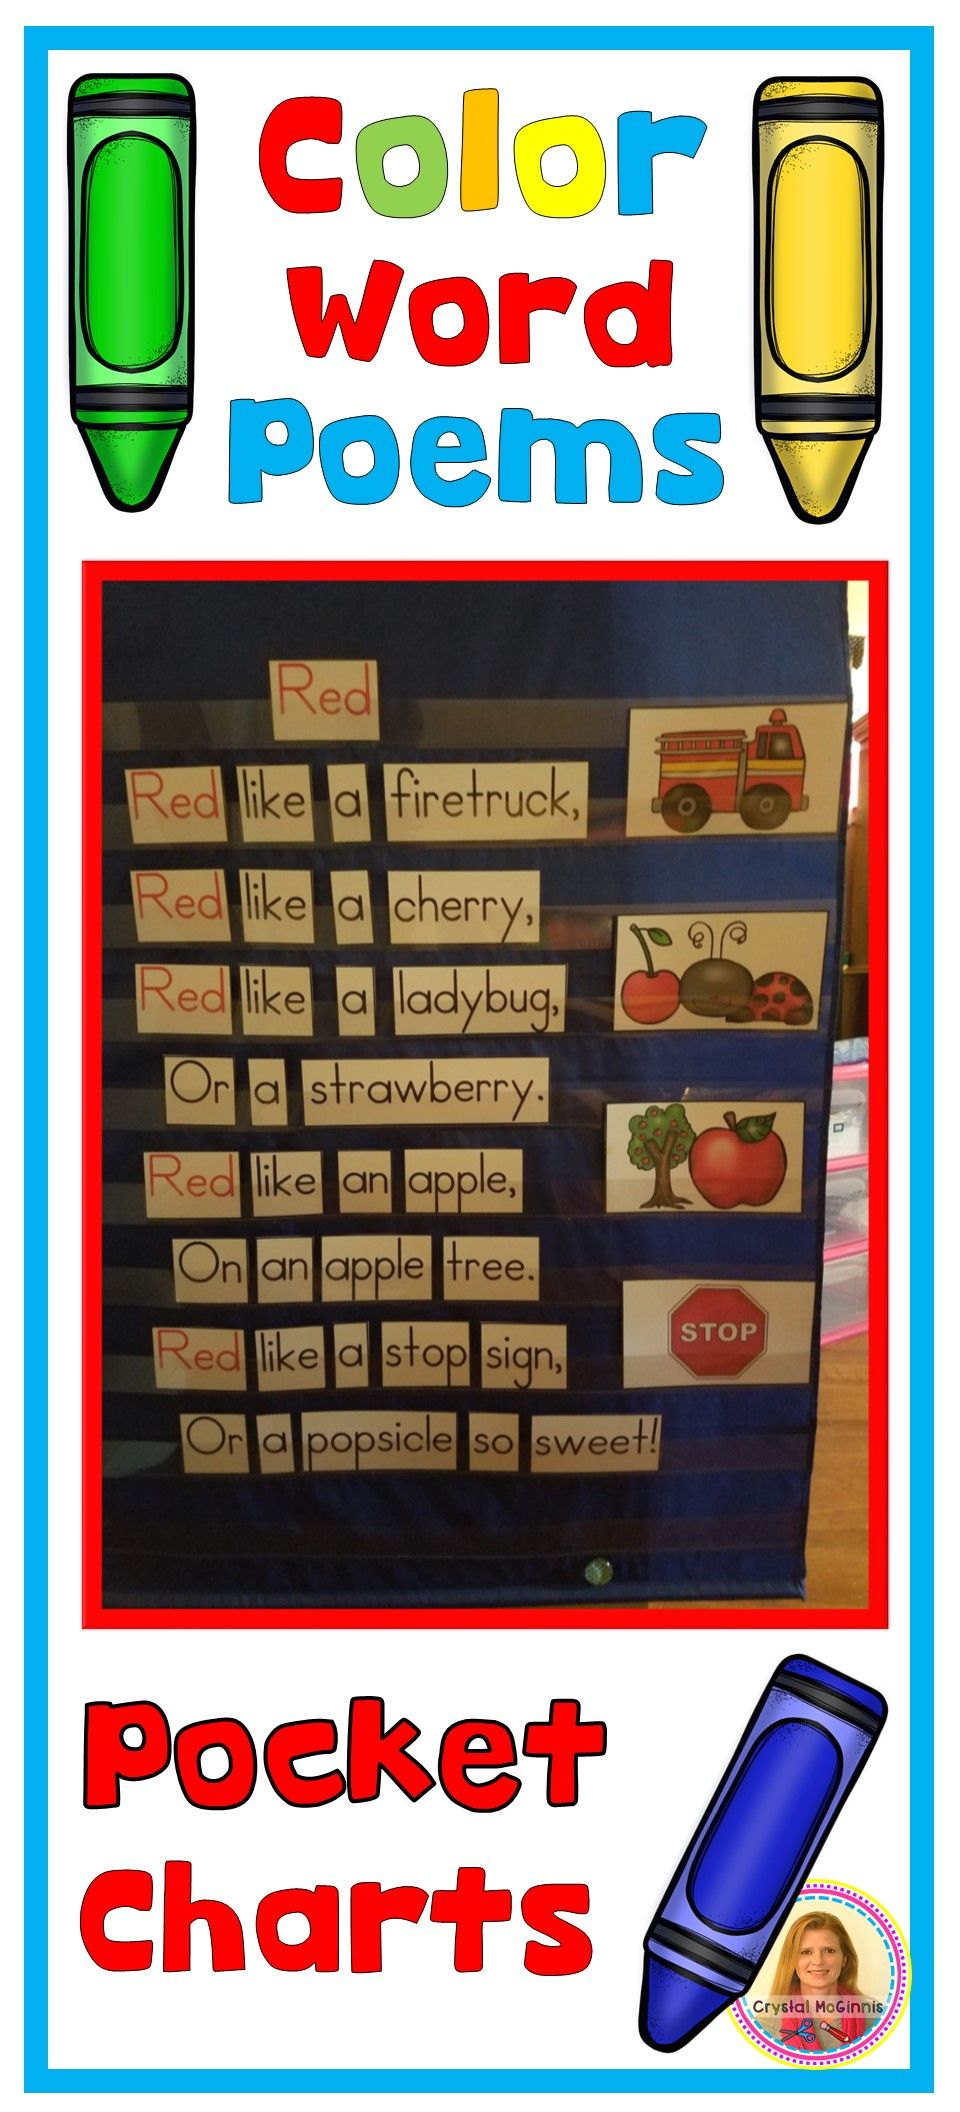 POCKET CHARTS! Color Word Poems for Shared Reading (Pocket Chart ...